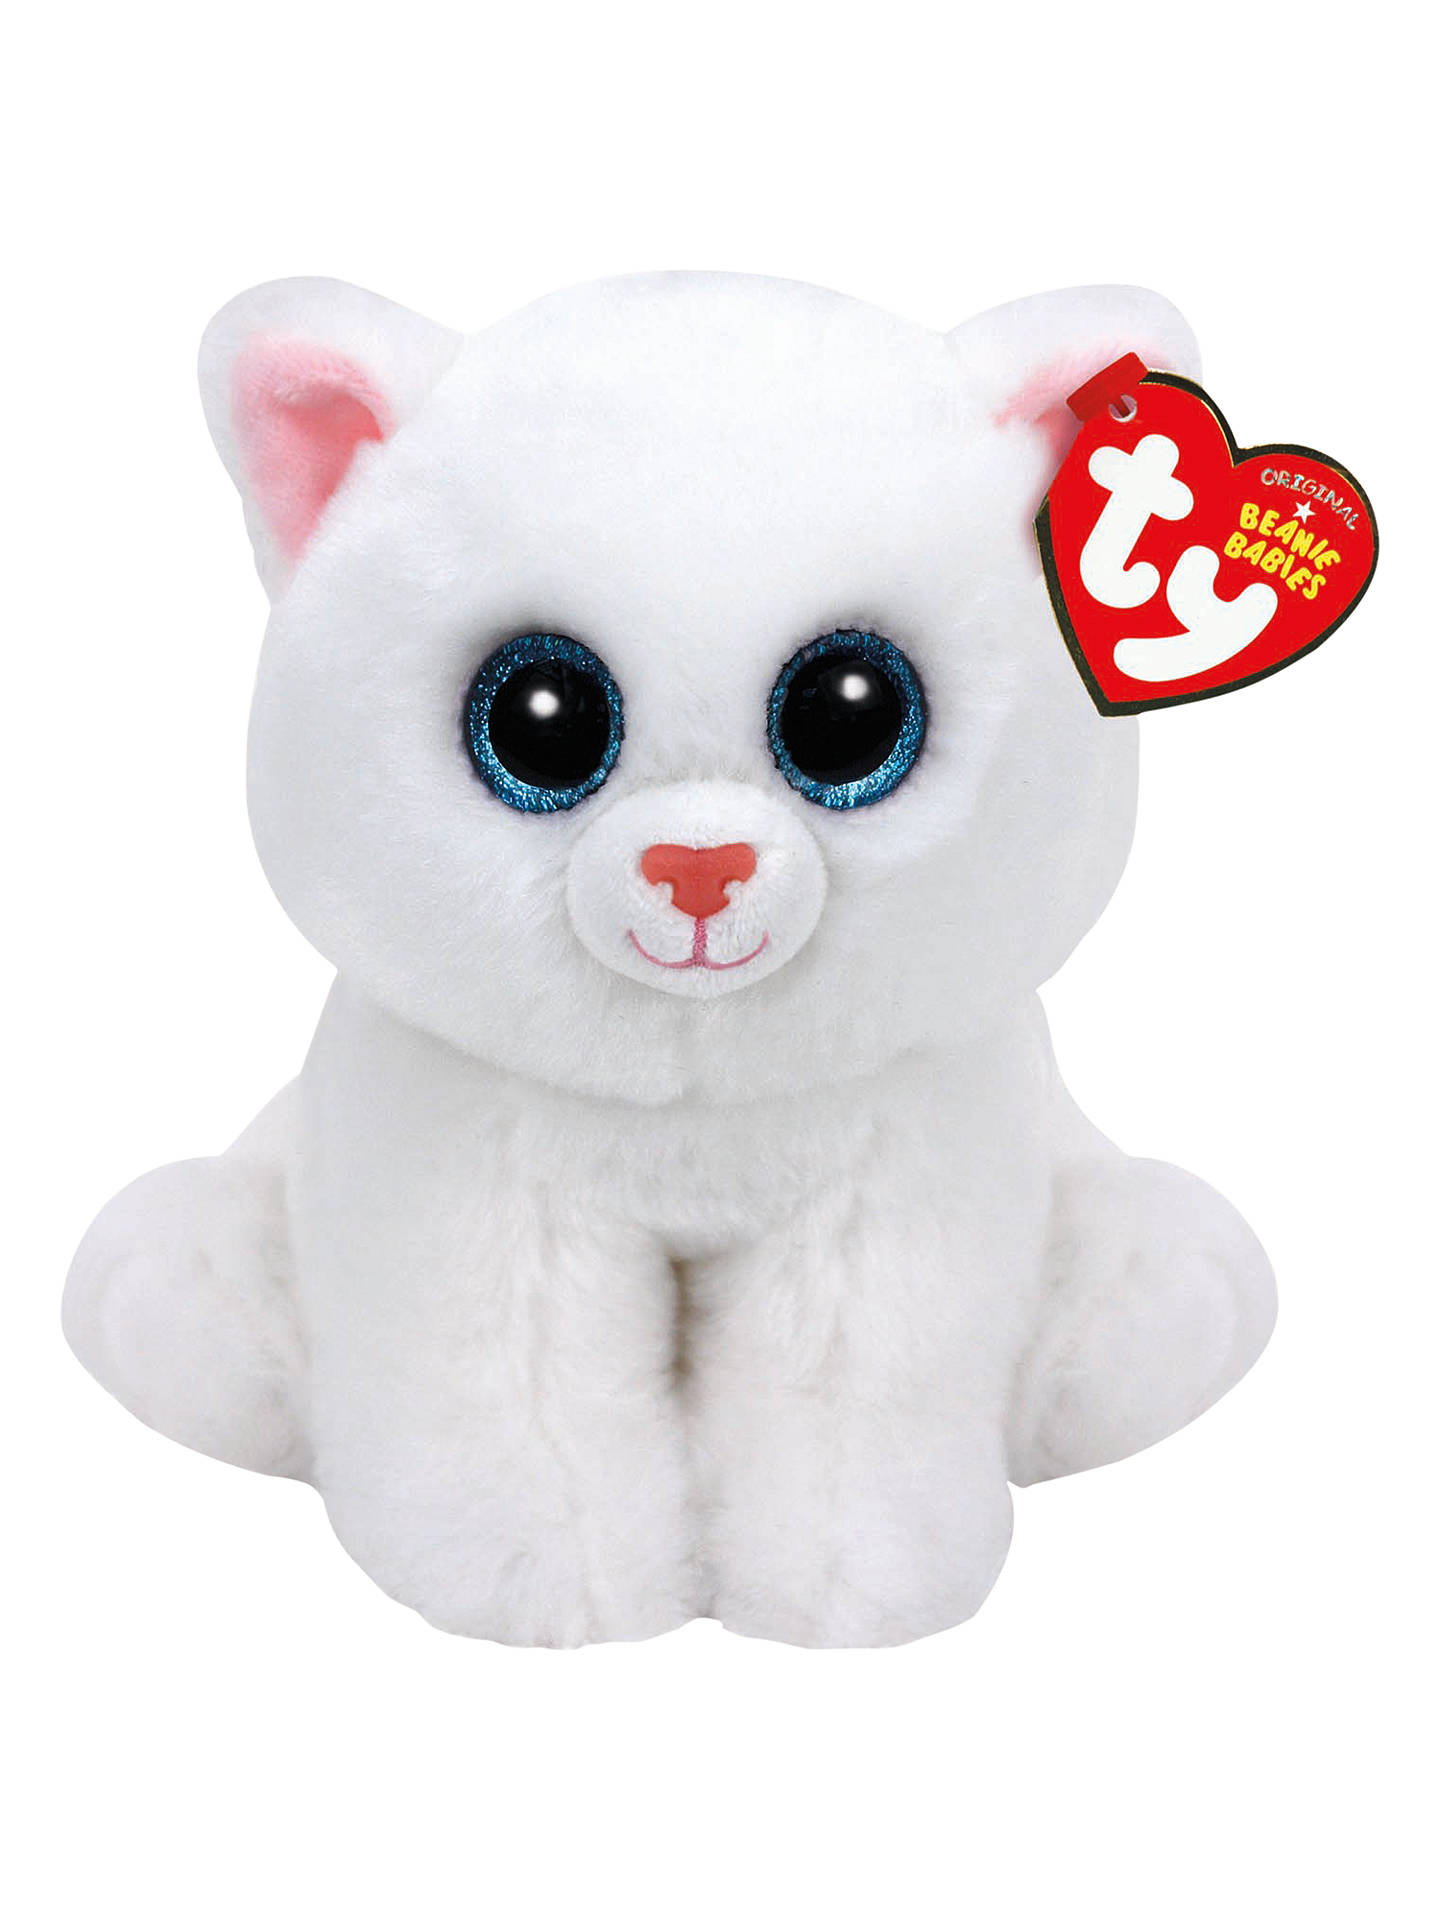 05fa402877c1 Buy Ty Beanie Babies Pearl Cat Soft Toy